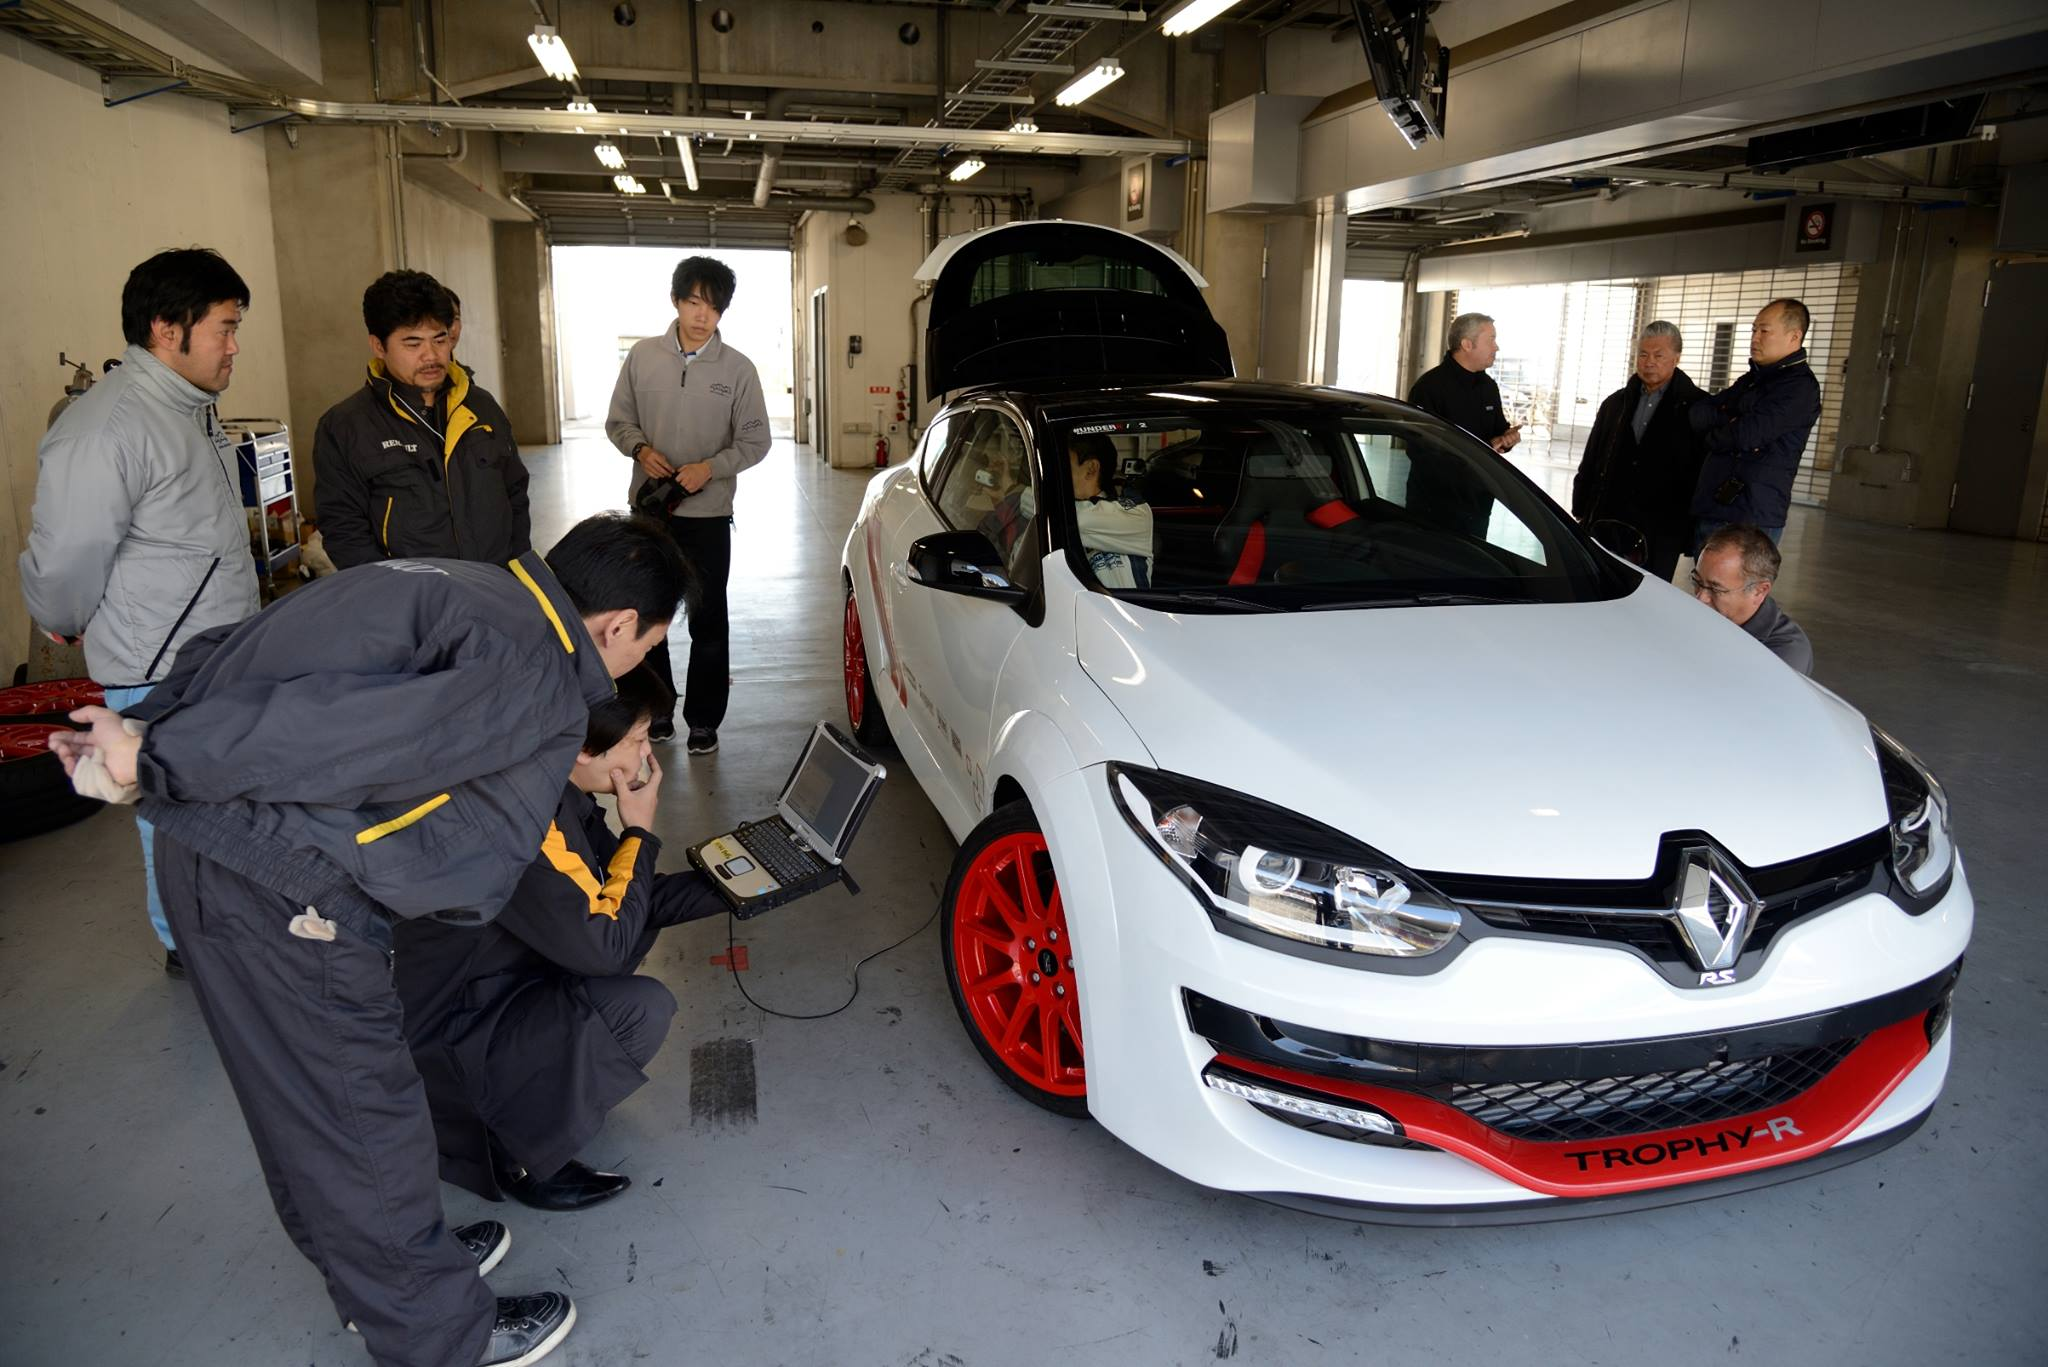 S0-La-Renault-Megane-R-S-275-Trophy-R-bat-le-record-du-Fuji-International-Speedway-338918